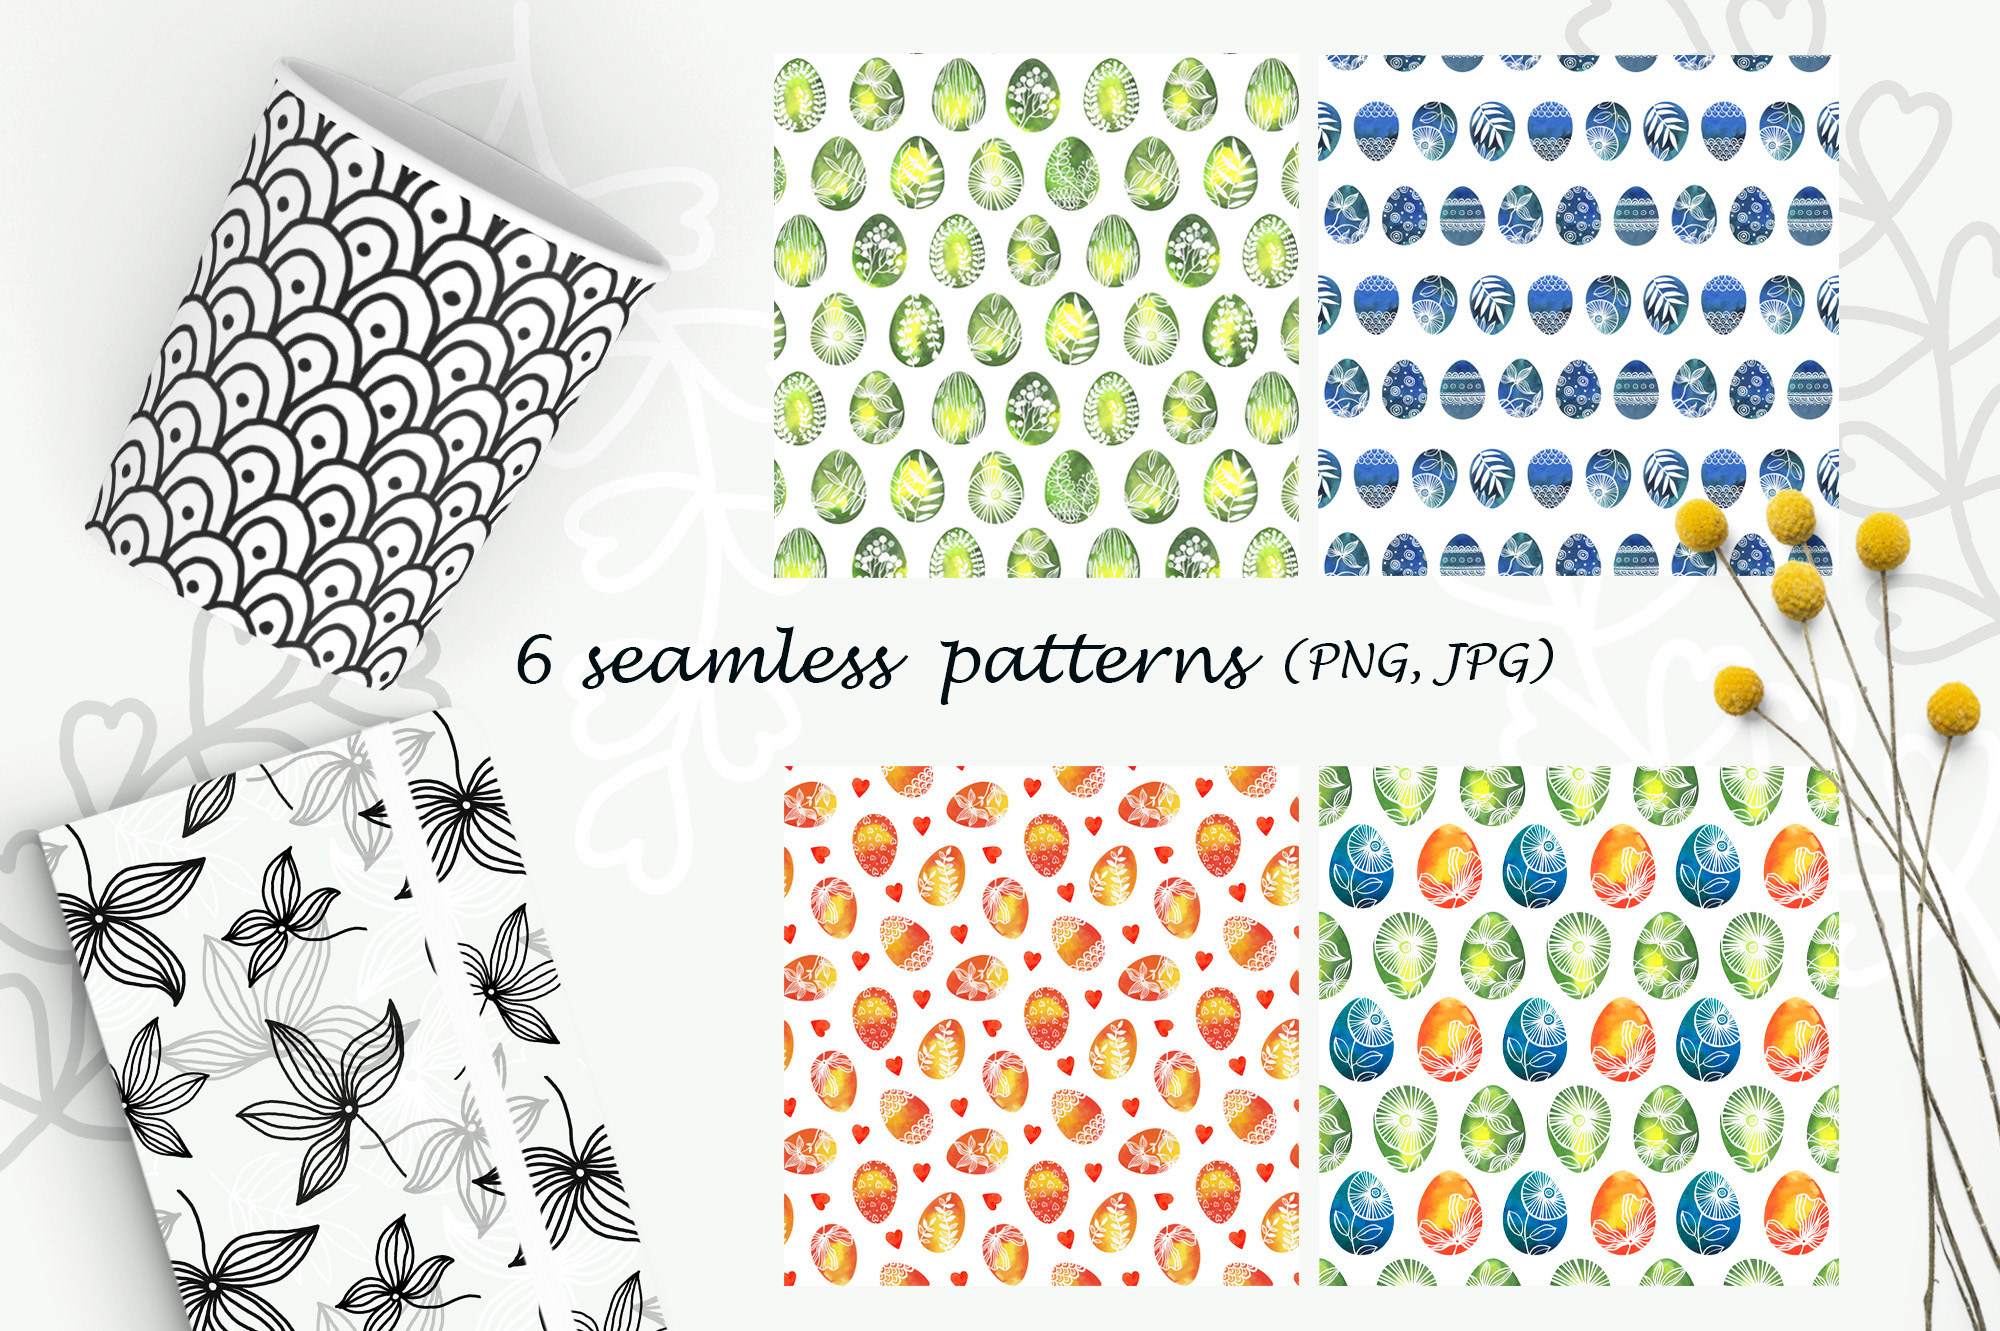 Watercolor Easter eggs, patterns example image 4